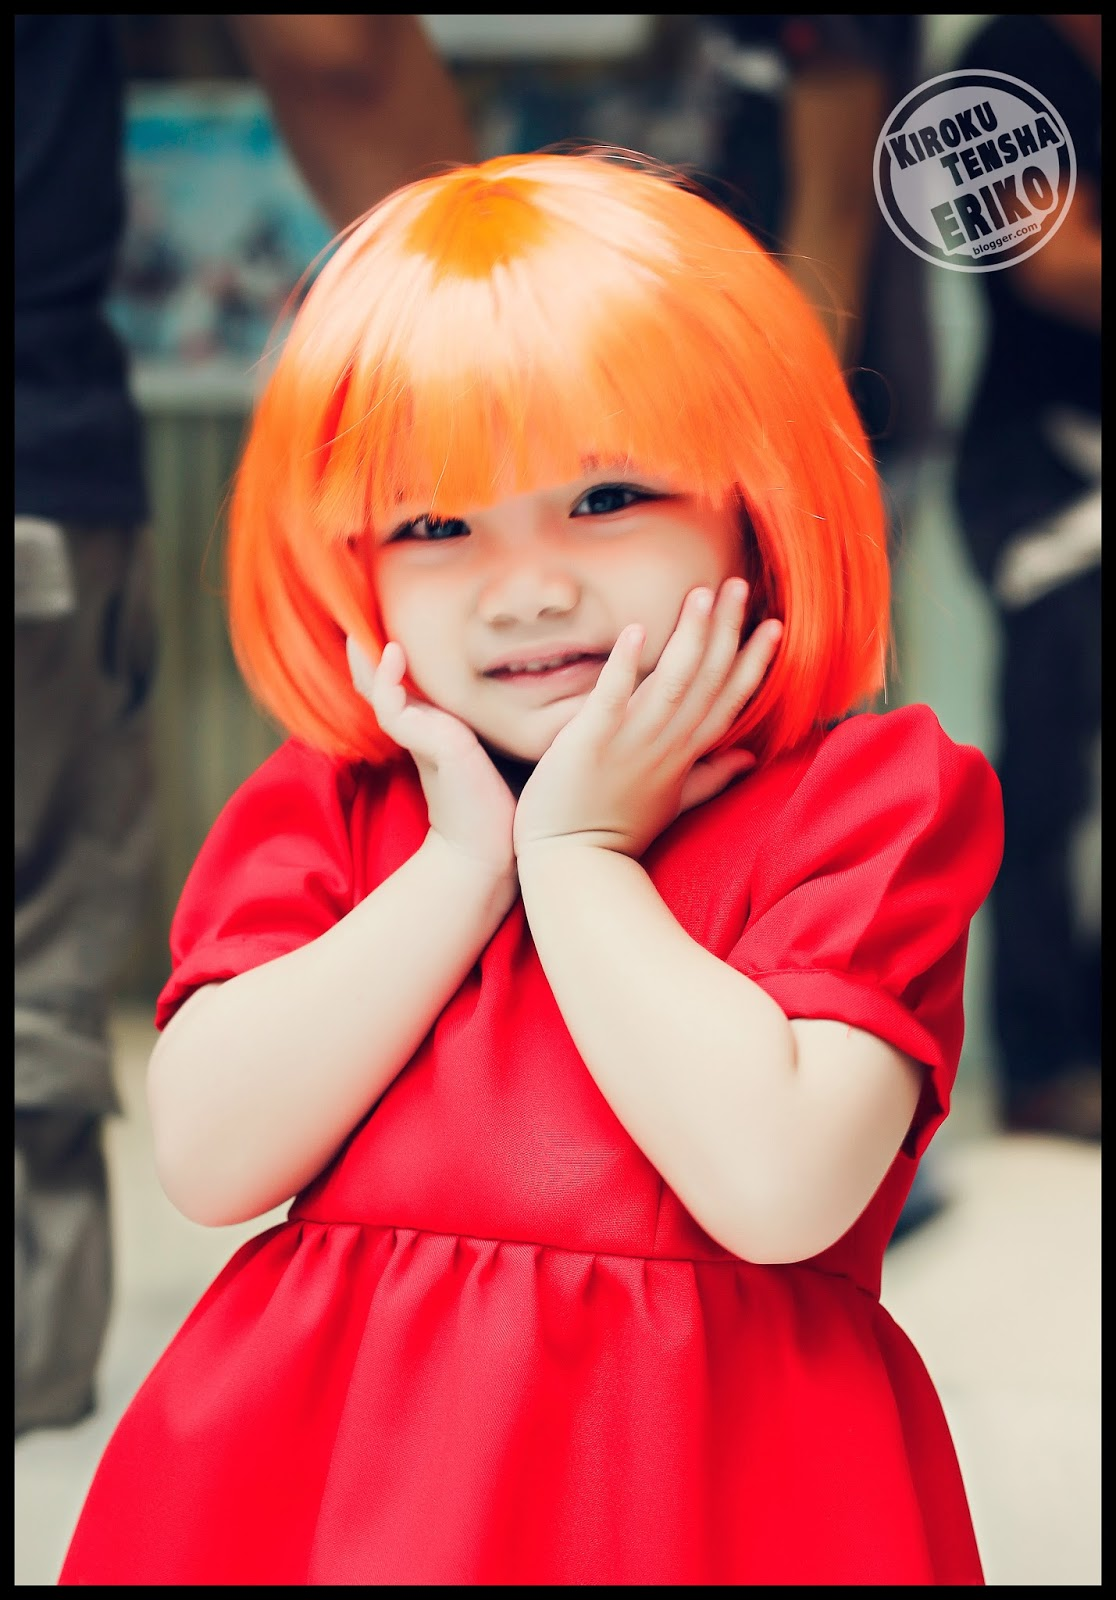 Ponyo at sakura-con by BlueWolf3777 on DeviantArt |Ponyo Cosplay